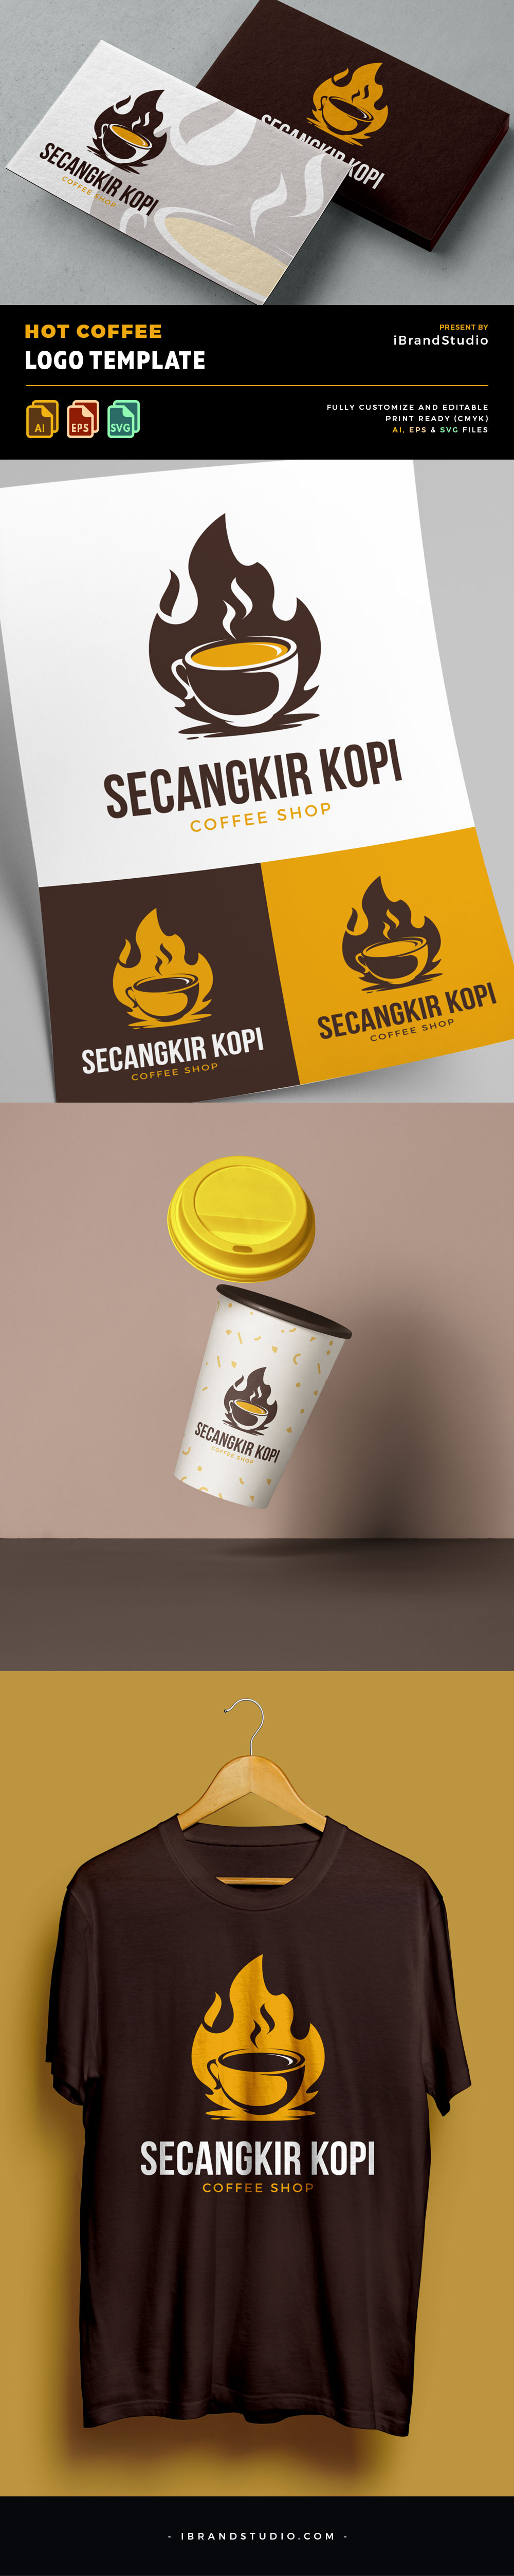 Free Hot Coffee Logo Template (AI, EPS)